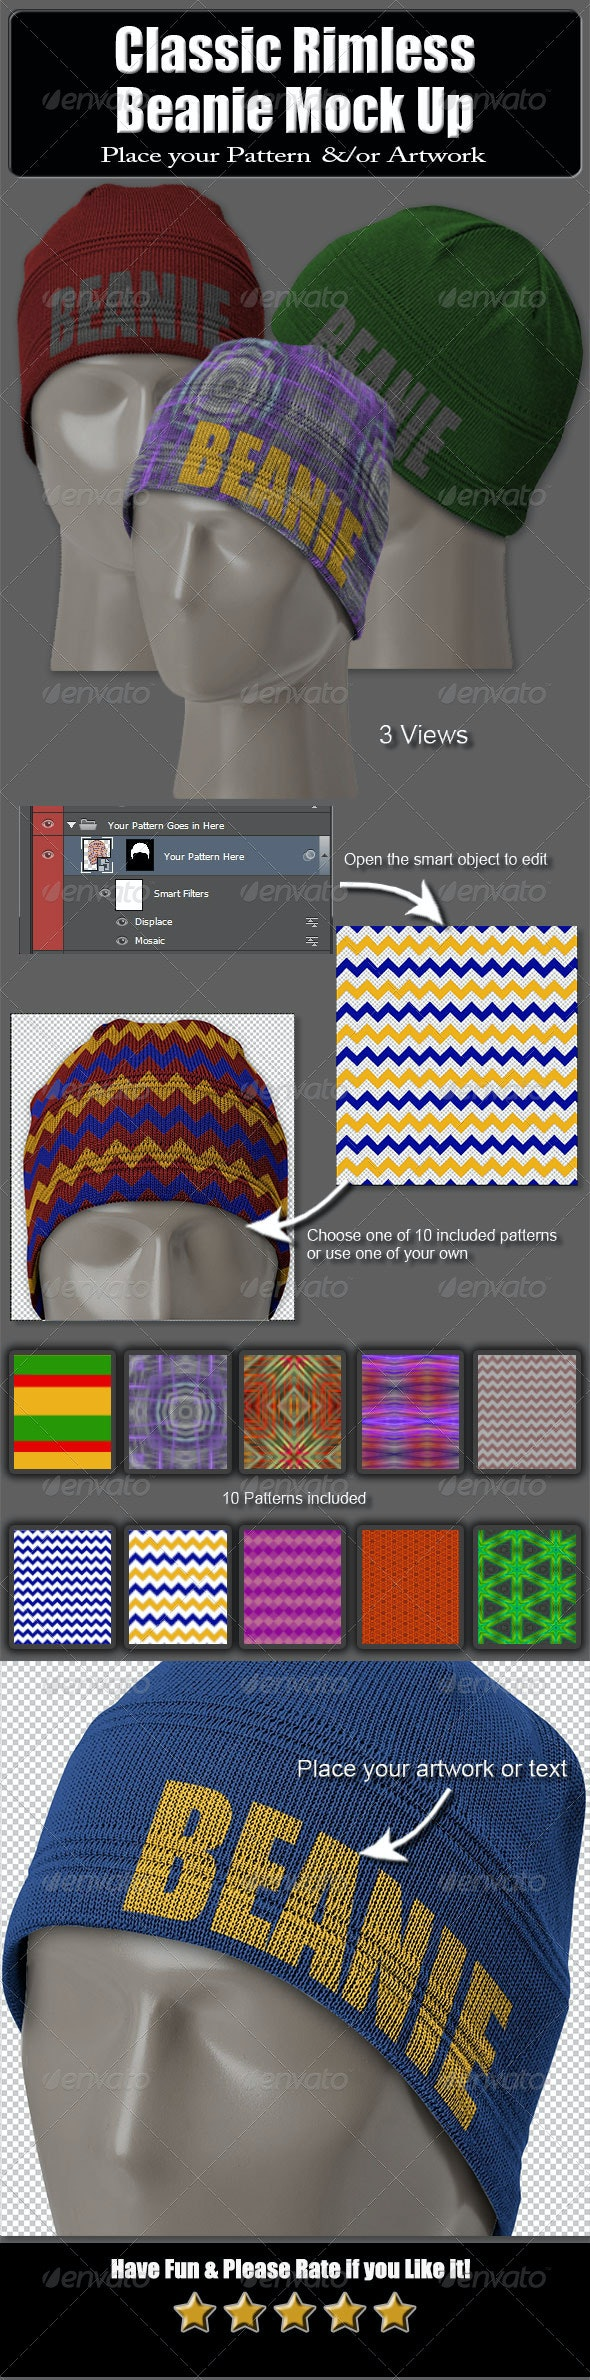 Classic Rimless Beanie Mock Up - Miscellaneous Apparel